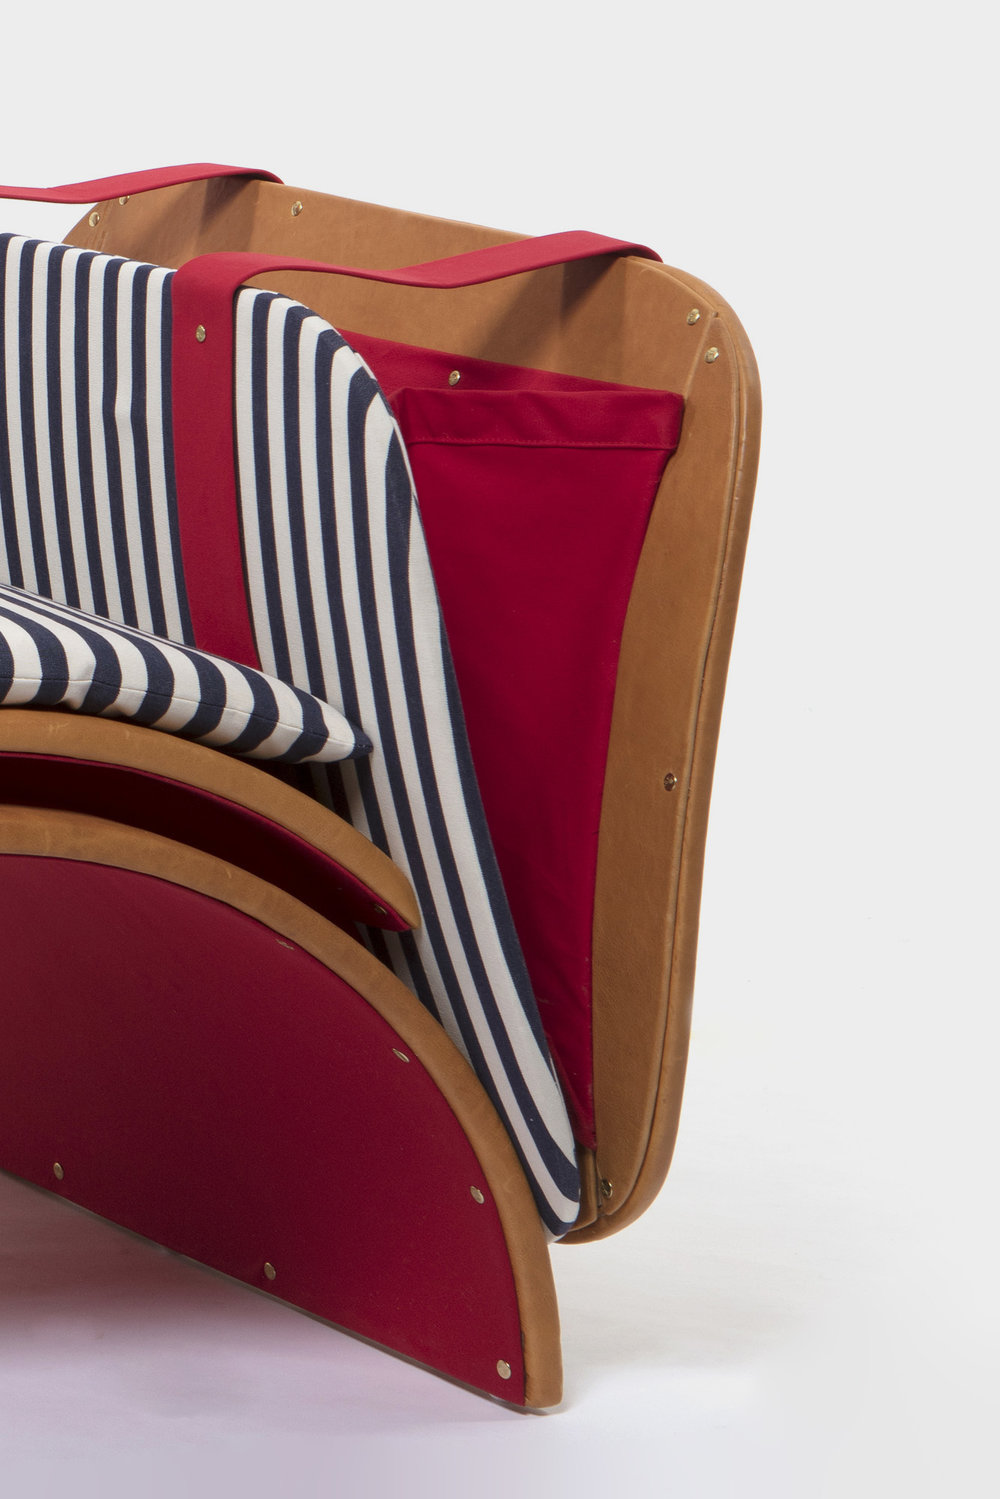 Federico Peri_Il Bisonte MDW18_Saddle armchair CUT1©Giuseppe d'Alonzo_LOW.jpg